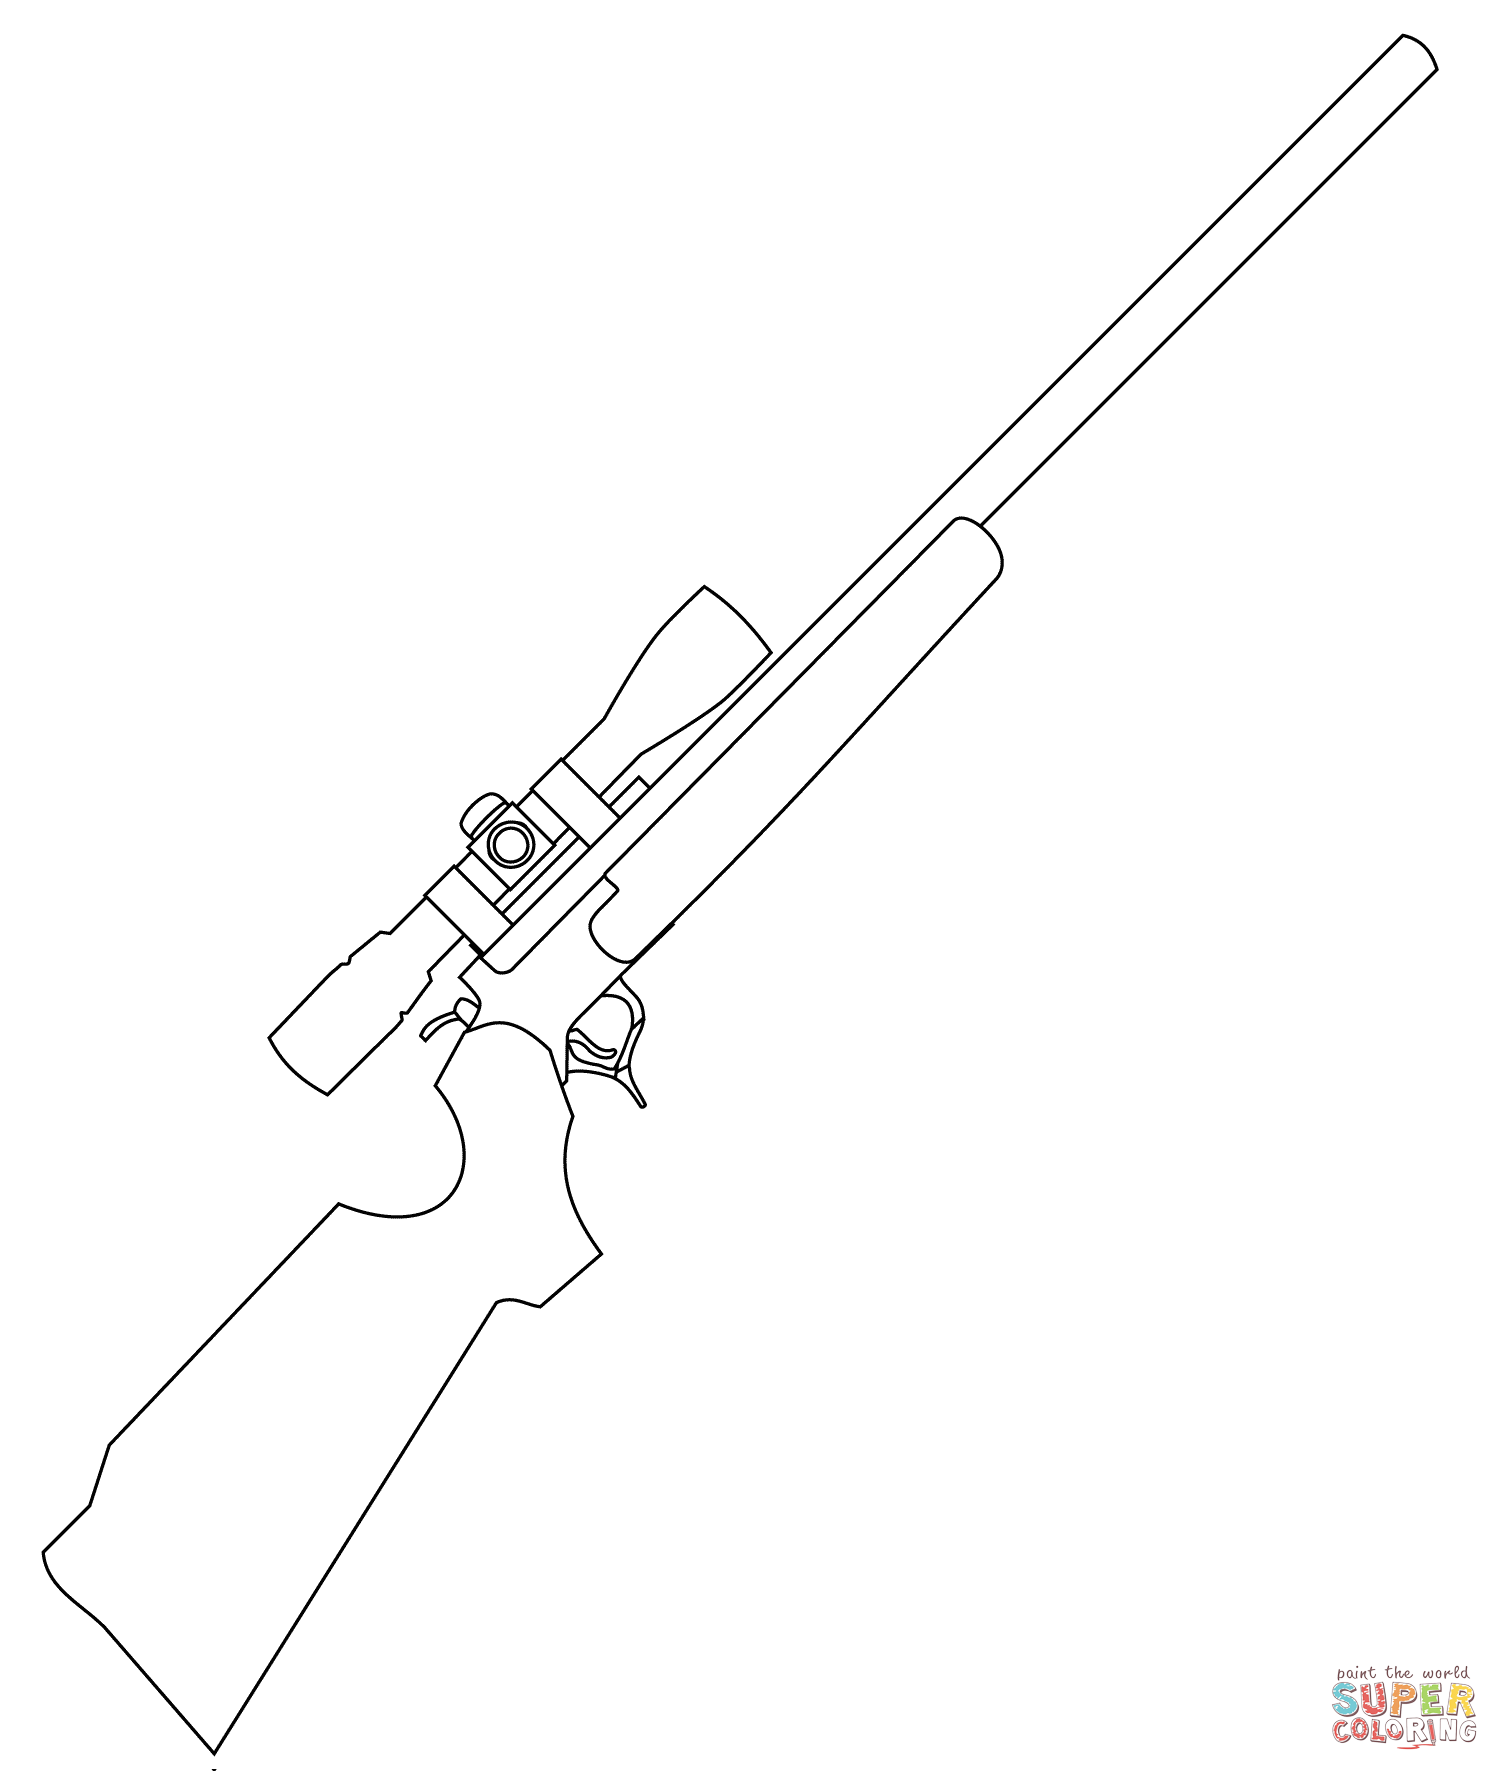 Sniper Rifle Coloring Page